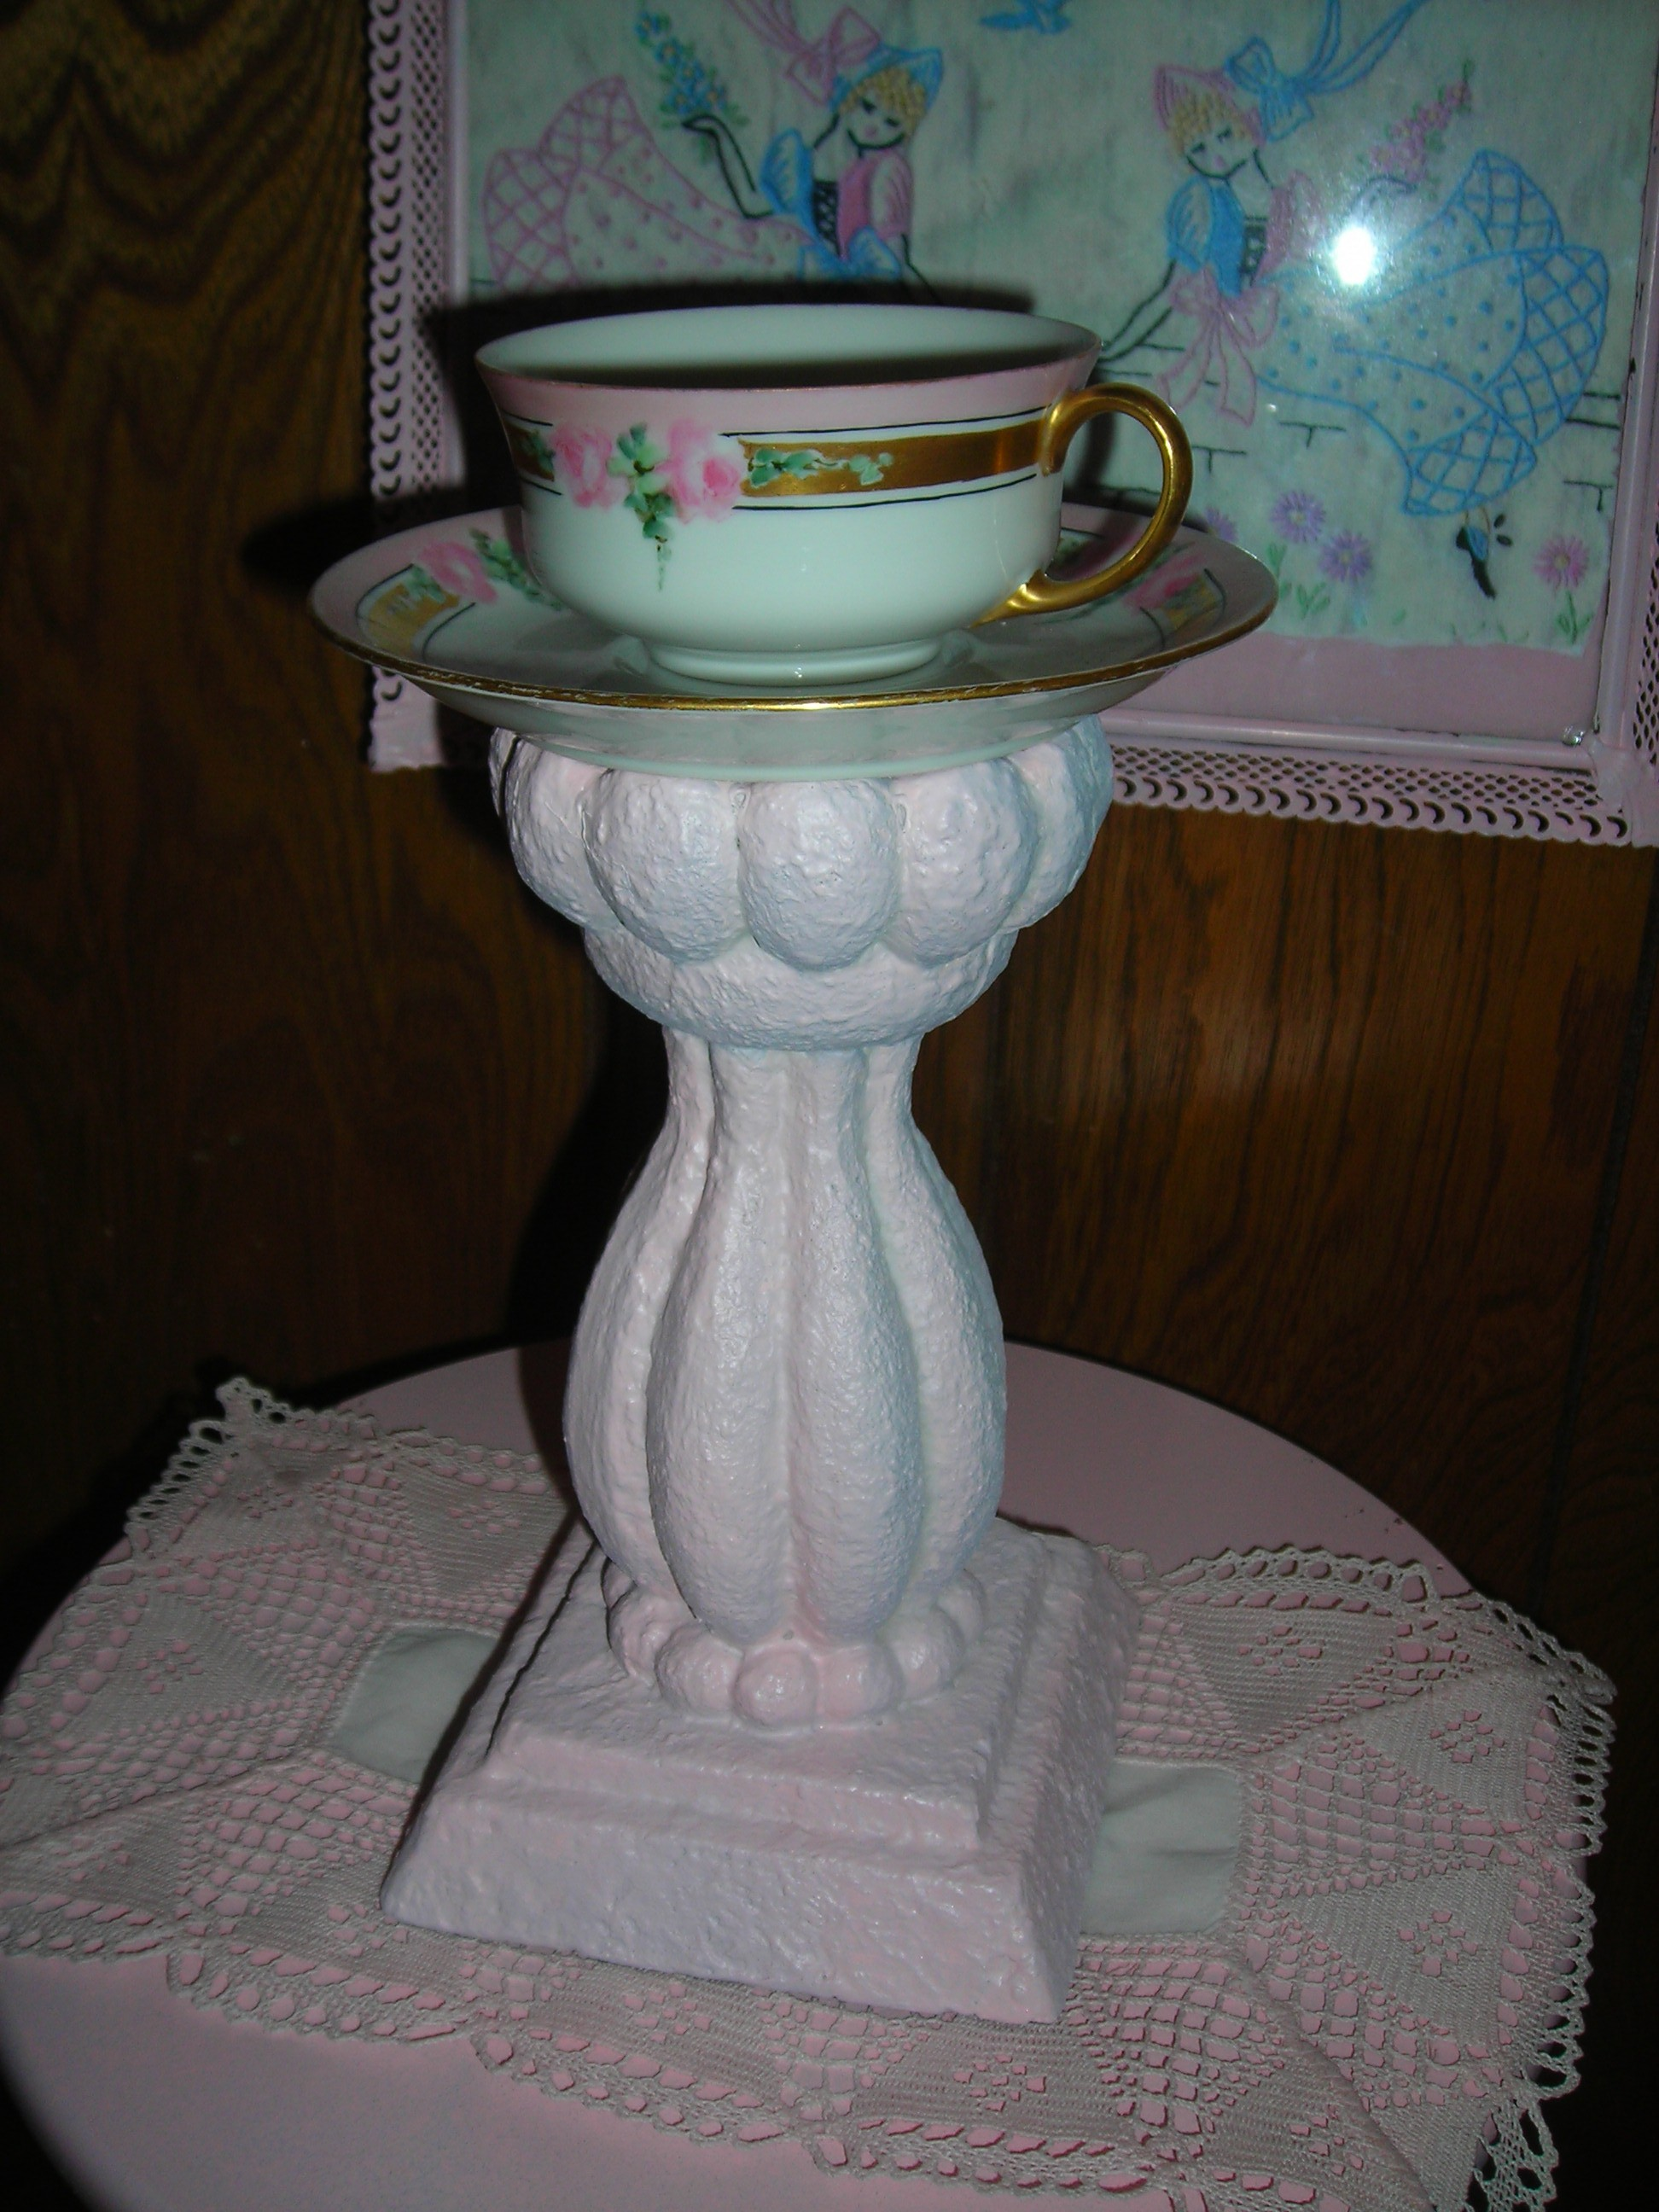 this was an UGLY, nasty candlestick bought at a yard sale recently. a dip of pink paint and she's lovely. esp with a sweet tea cup and saucer on top!